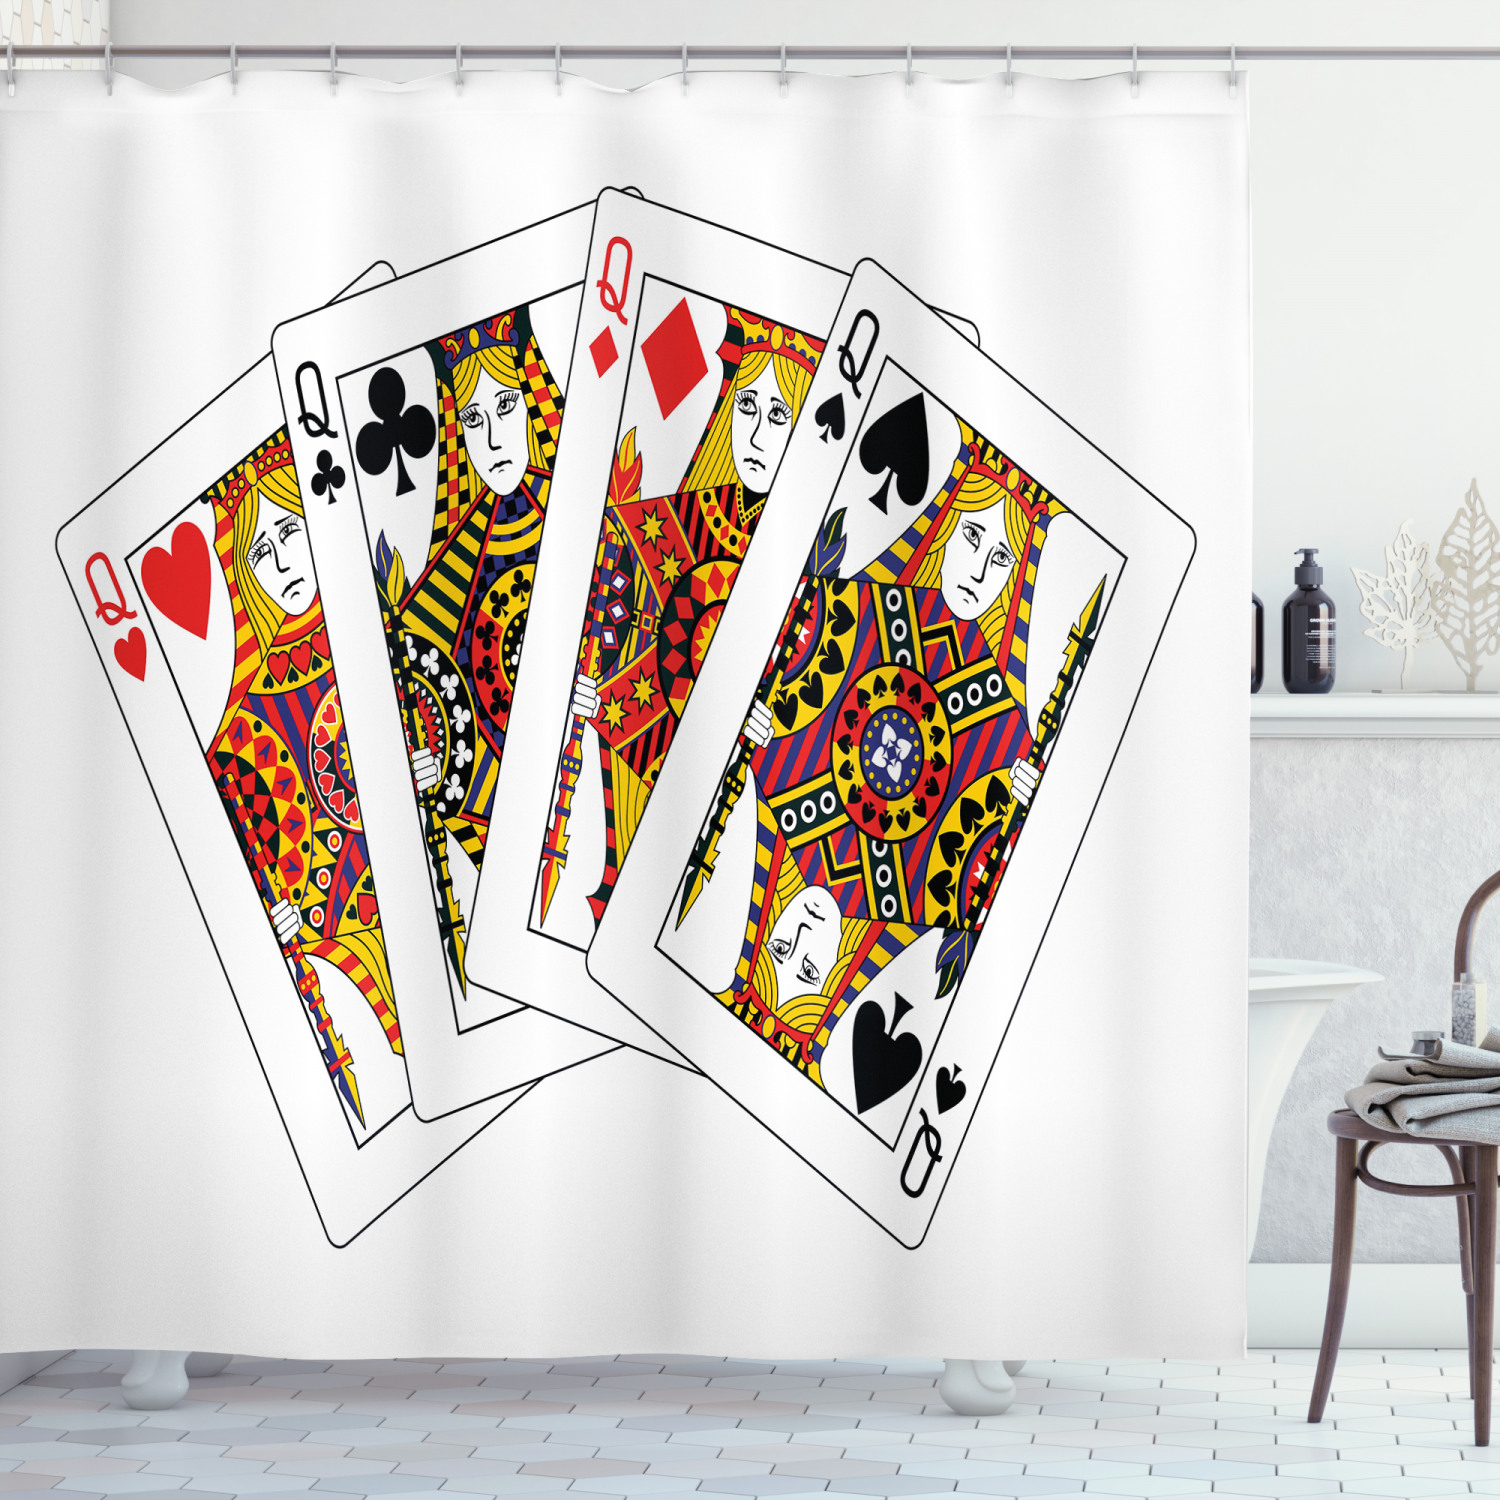 queen shower curtain queens poker set faces hearts and spades gambling theme symbols playing cards fabric bathroom set with hooks black red yellow